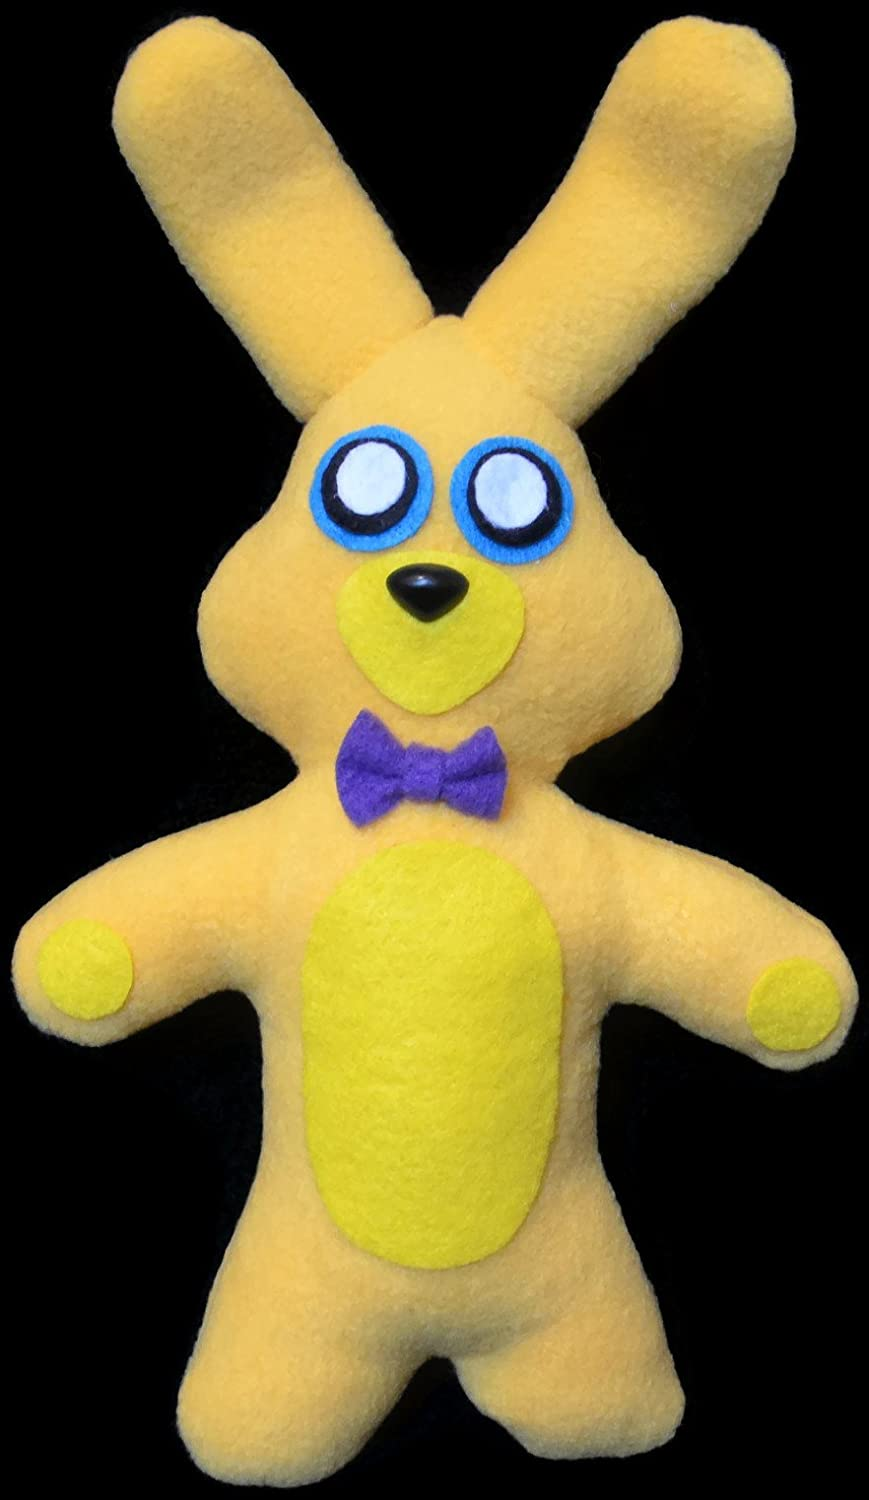 Fnaf Spring Bonnie ~Handmade Plush~ Five Nights at Freddys Inspired 13